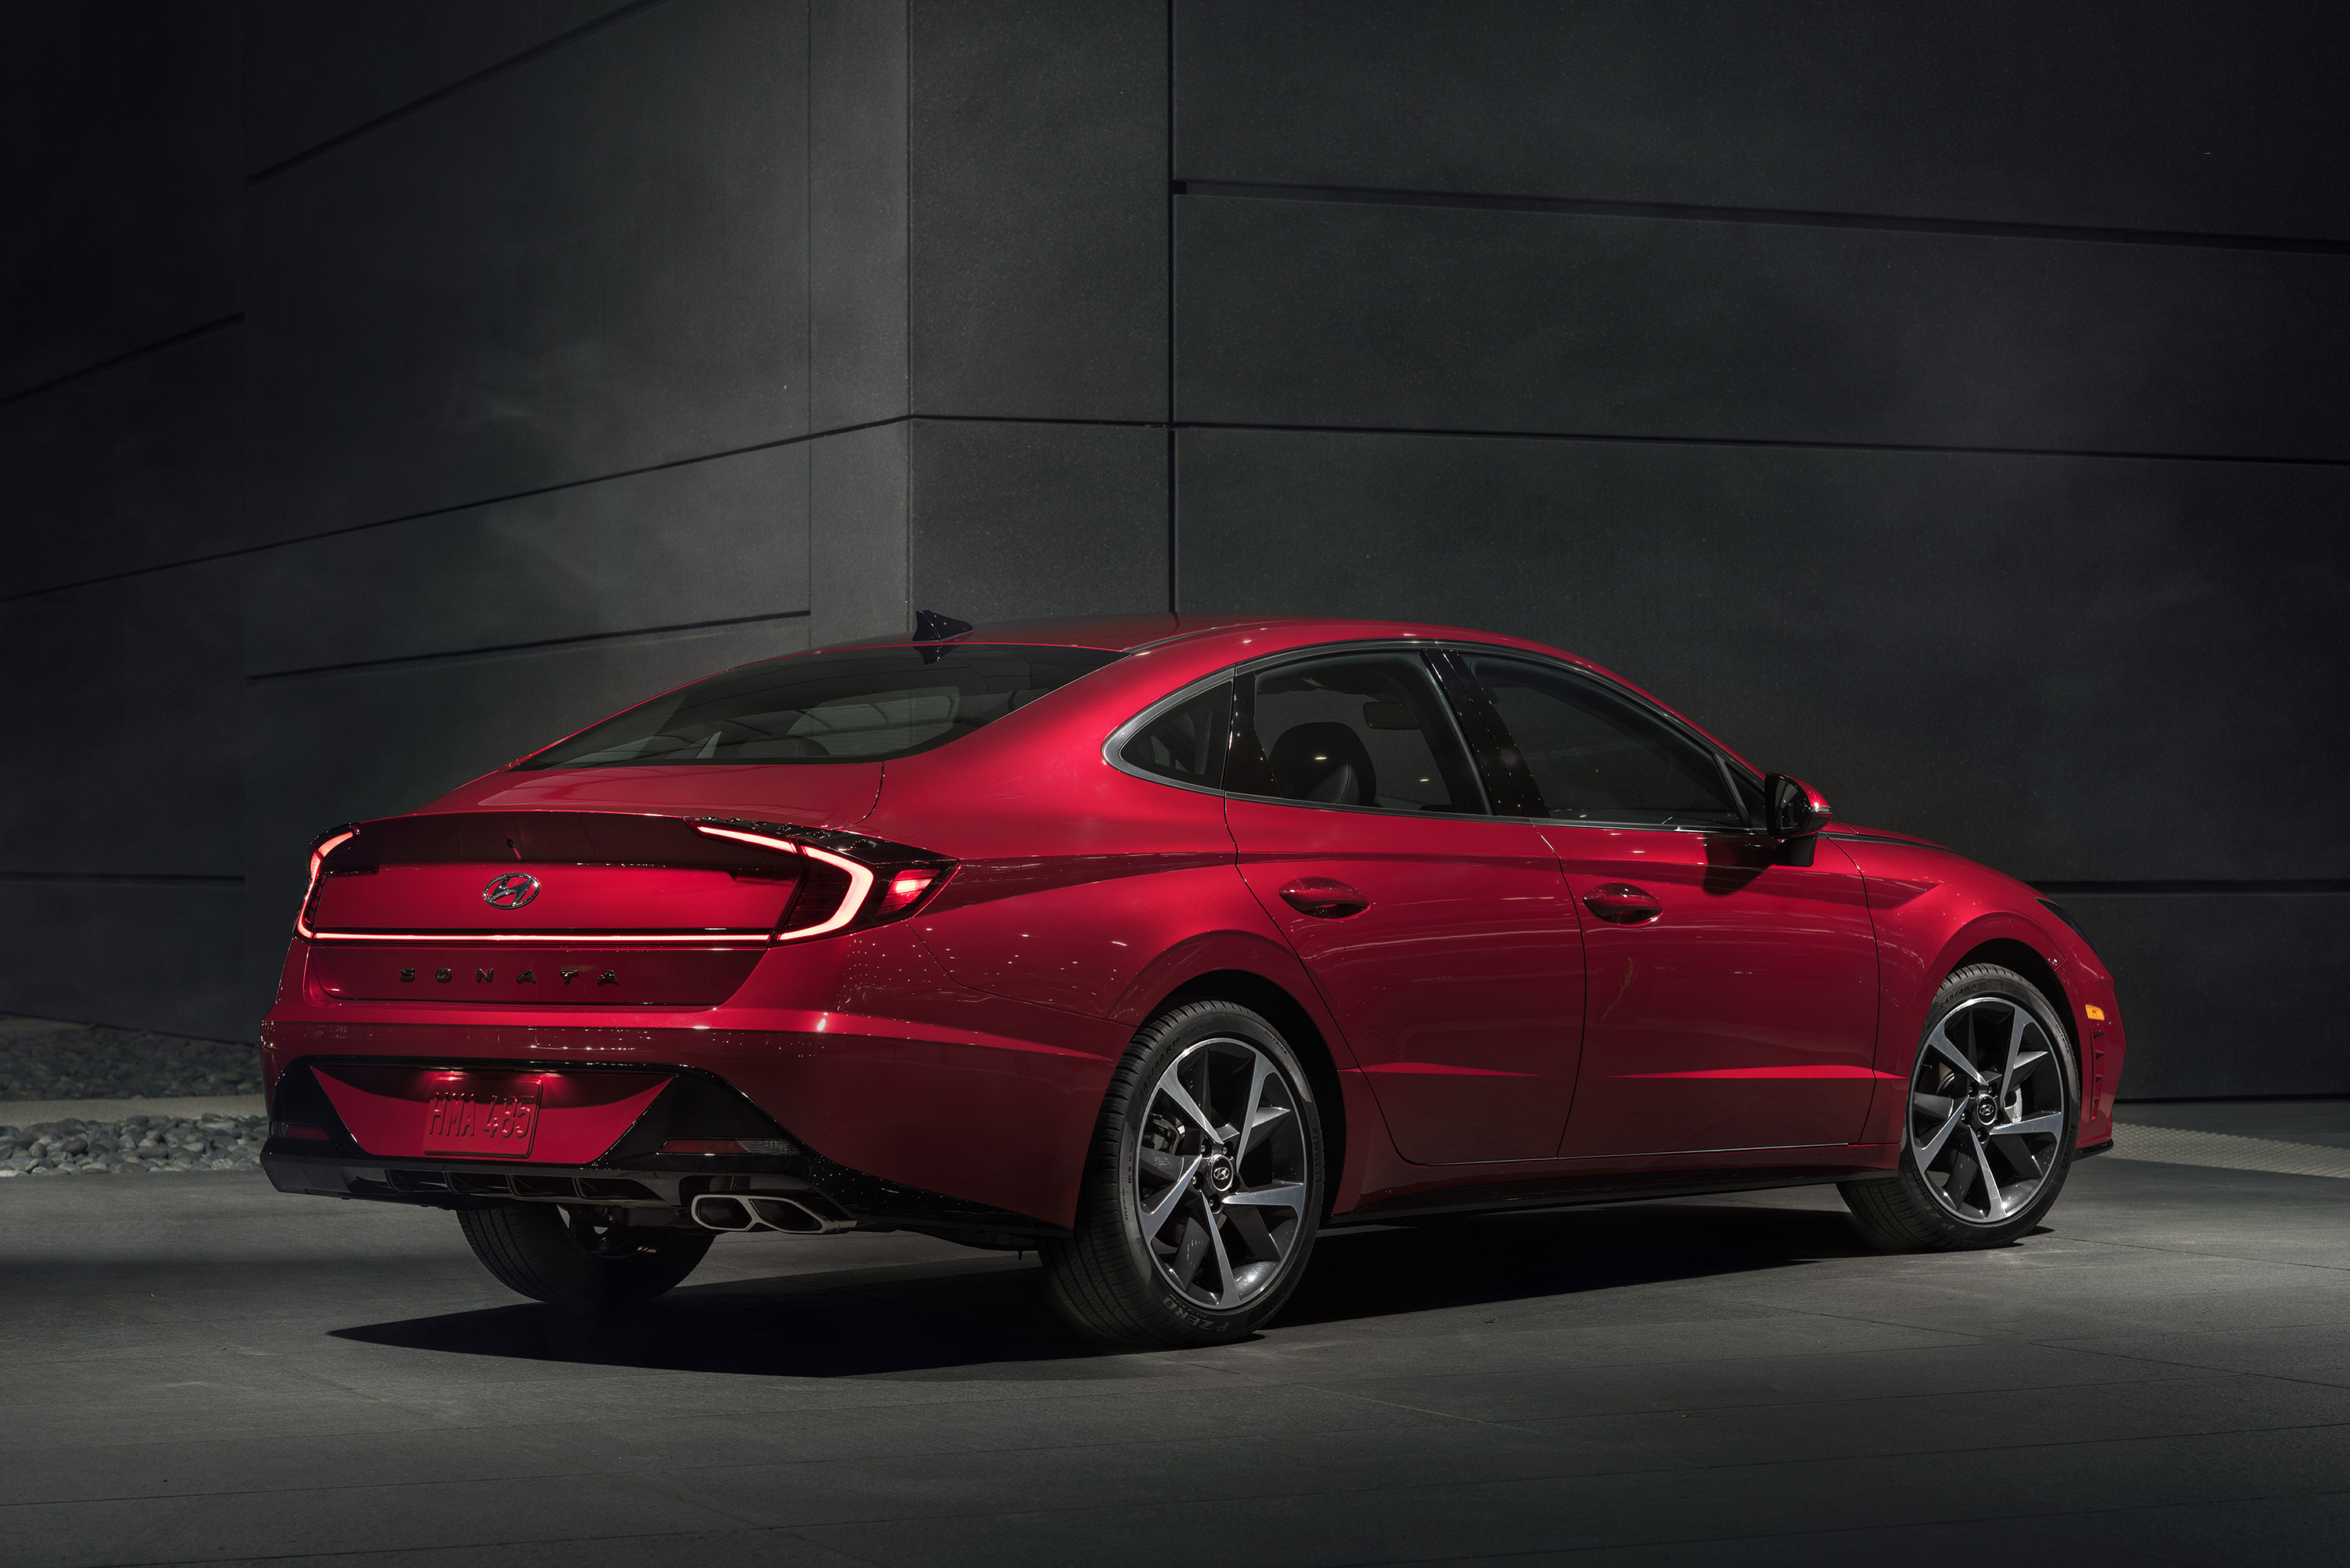 2020 Hyundai three quarter rear view